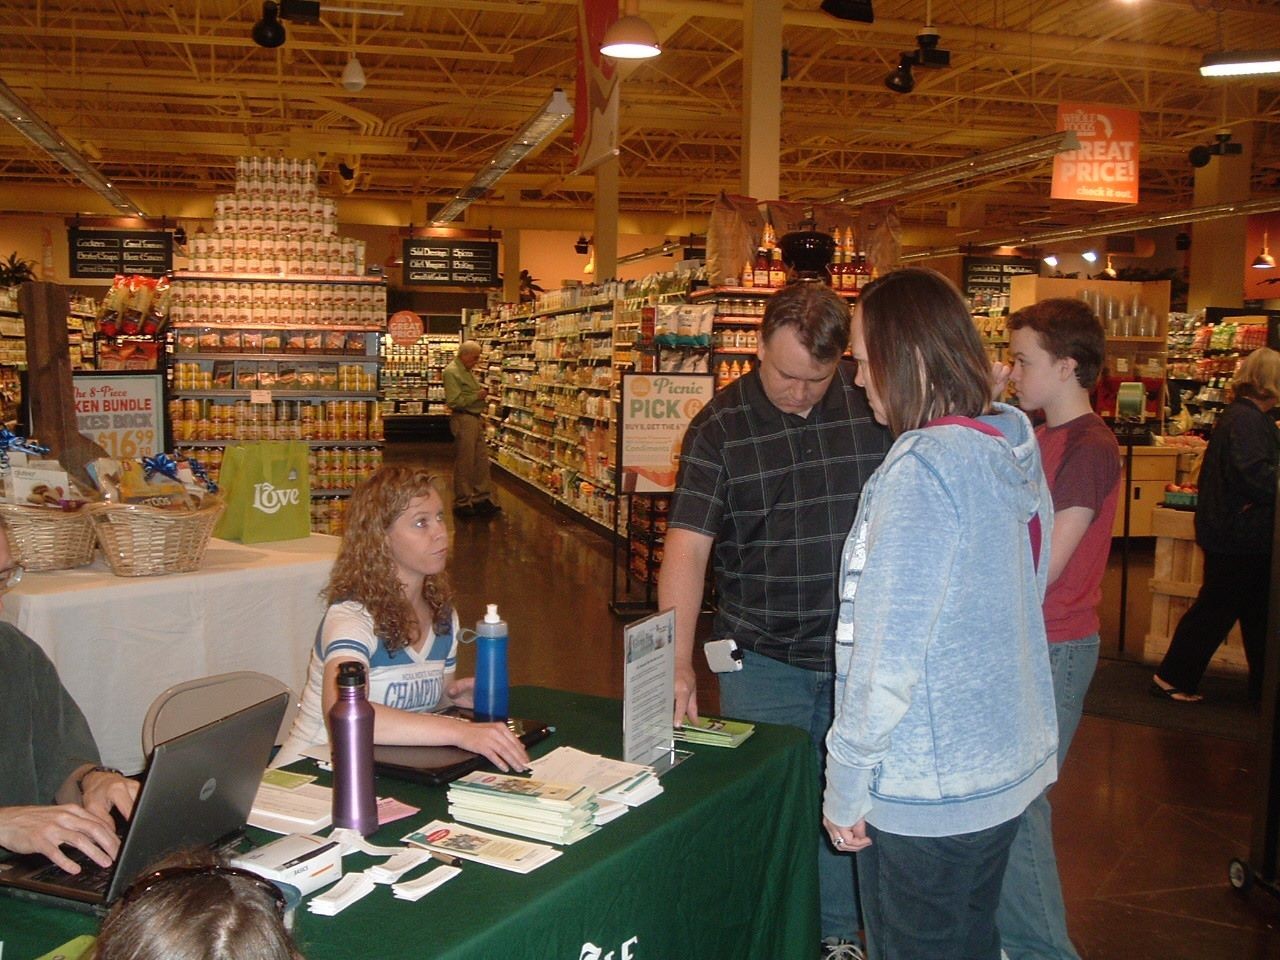 Visitors get helpful information from a GFL volunteer. All dietary assistance is free to the public. We even have a free mentor program for newbies!